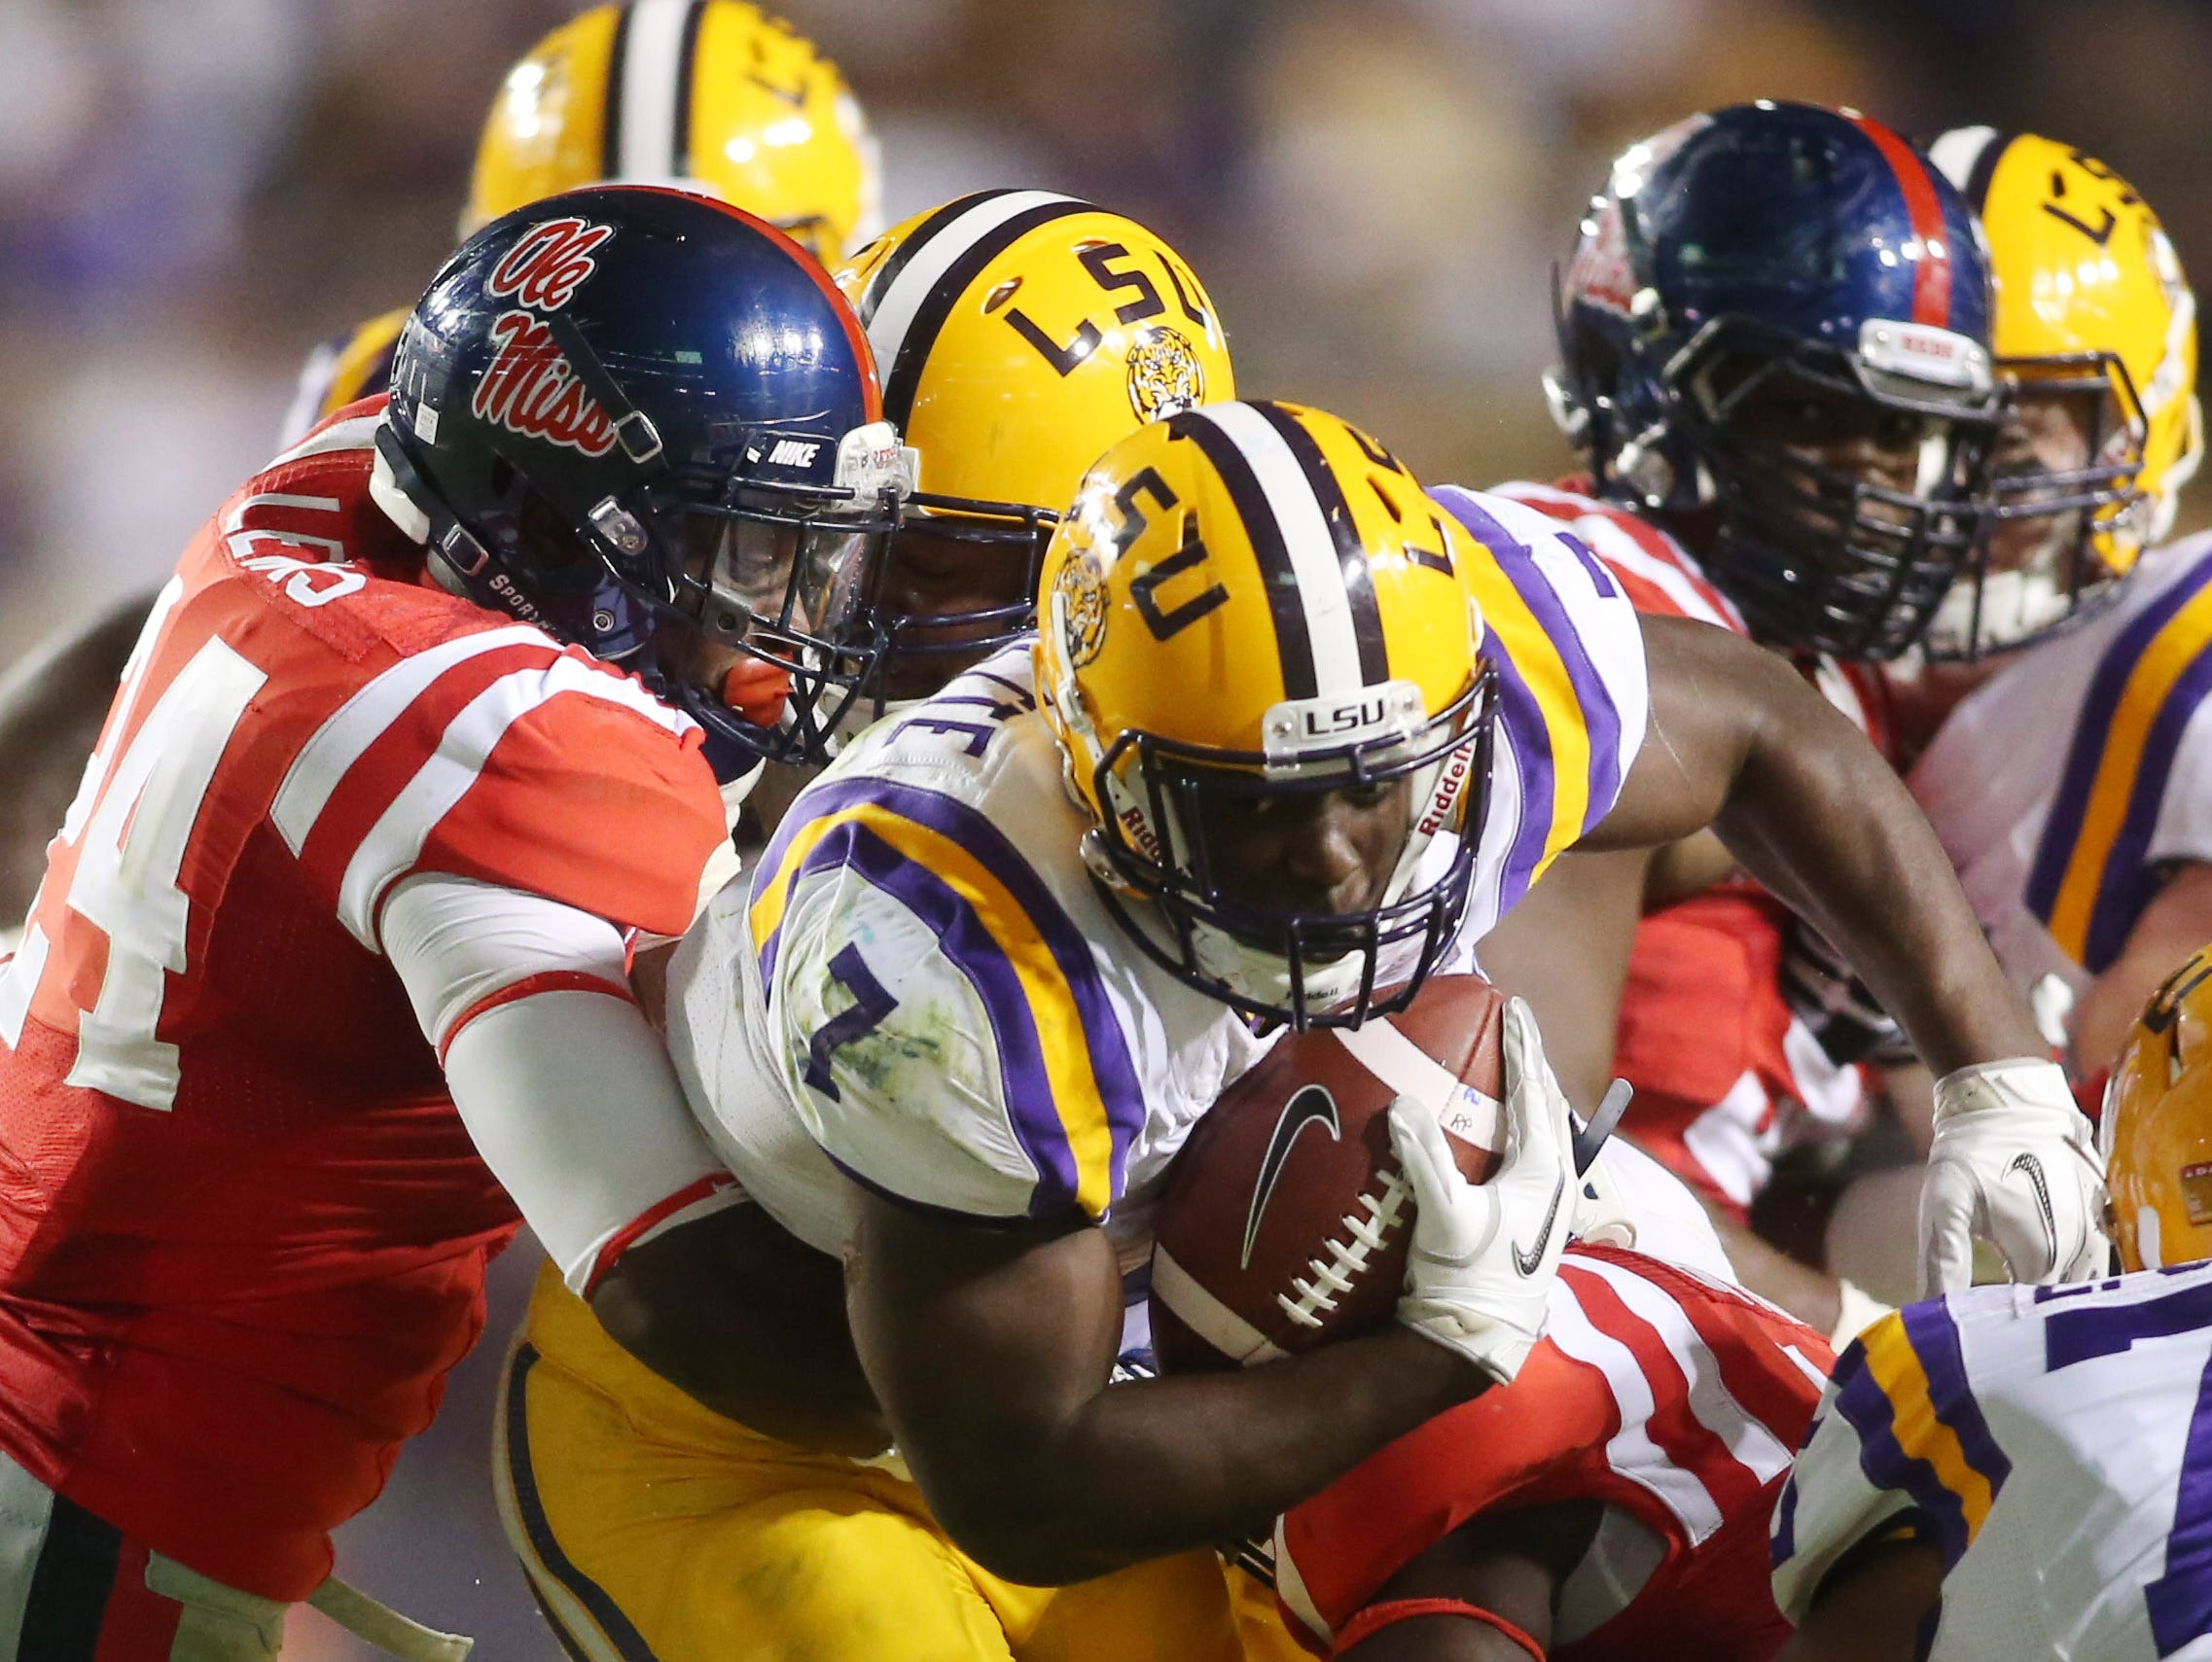 Ole Miss will play host to LSU on Nov. 21 at 2:30 p.m. on CBS.